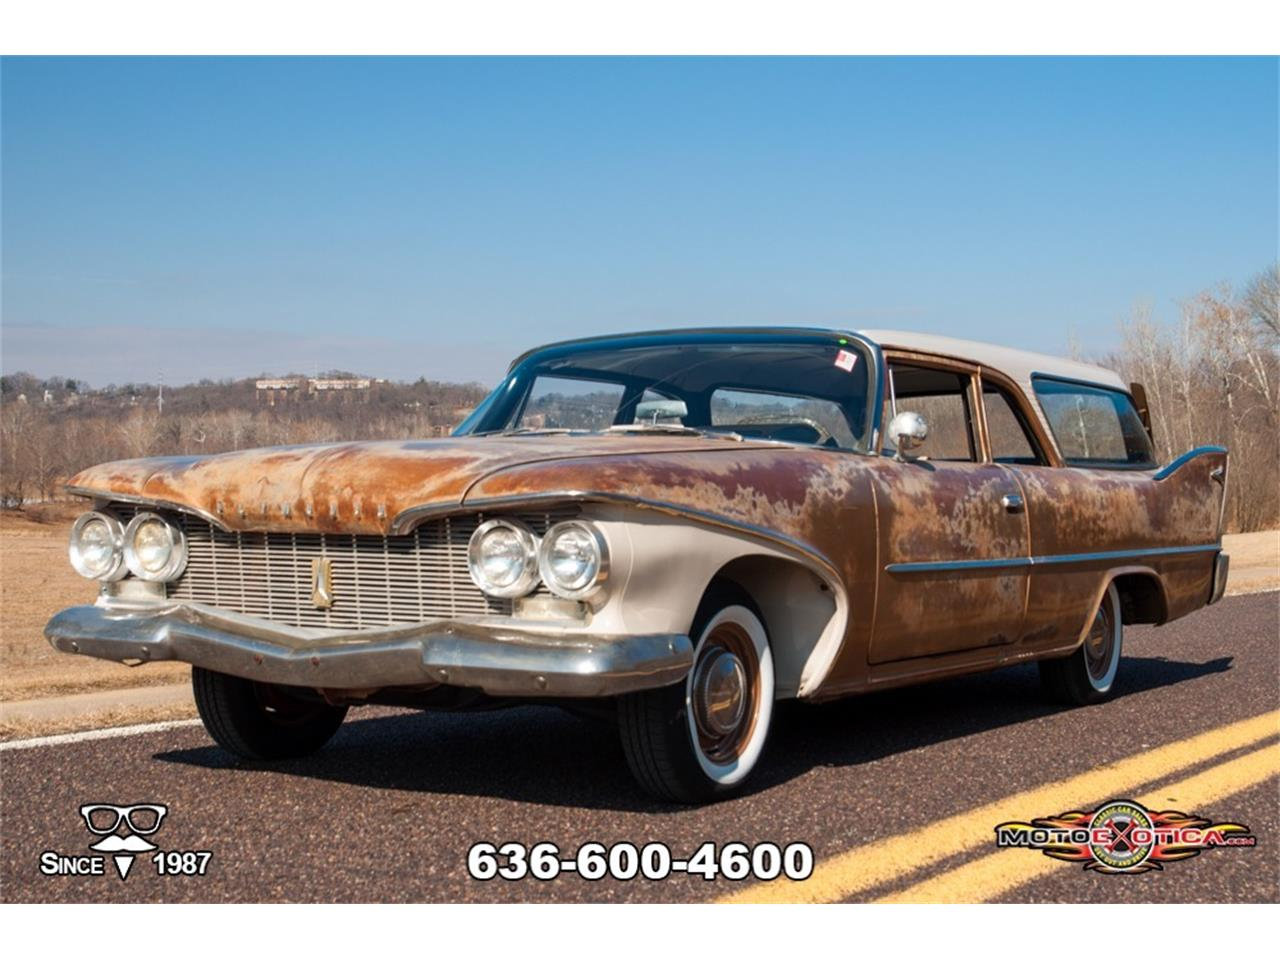 1960 Plymouth Station Wagon for sale in St. Louis, MO – photo 3